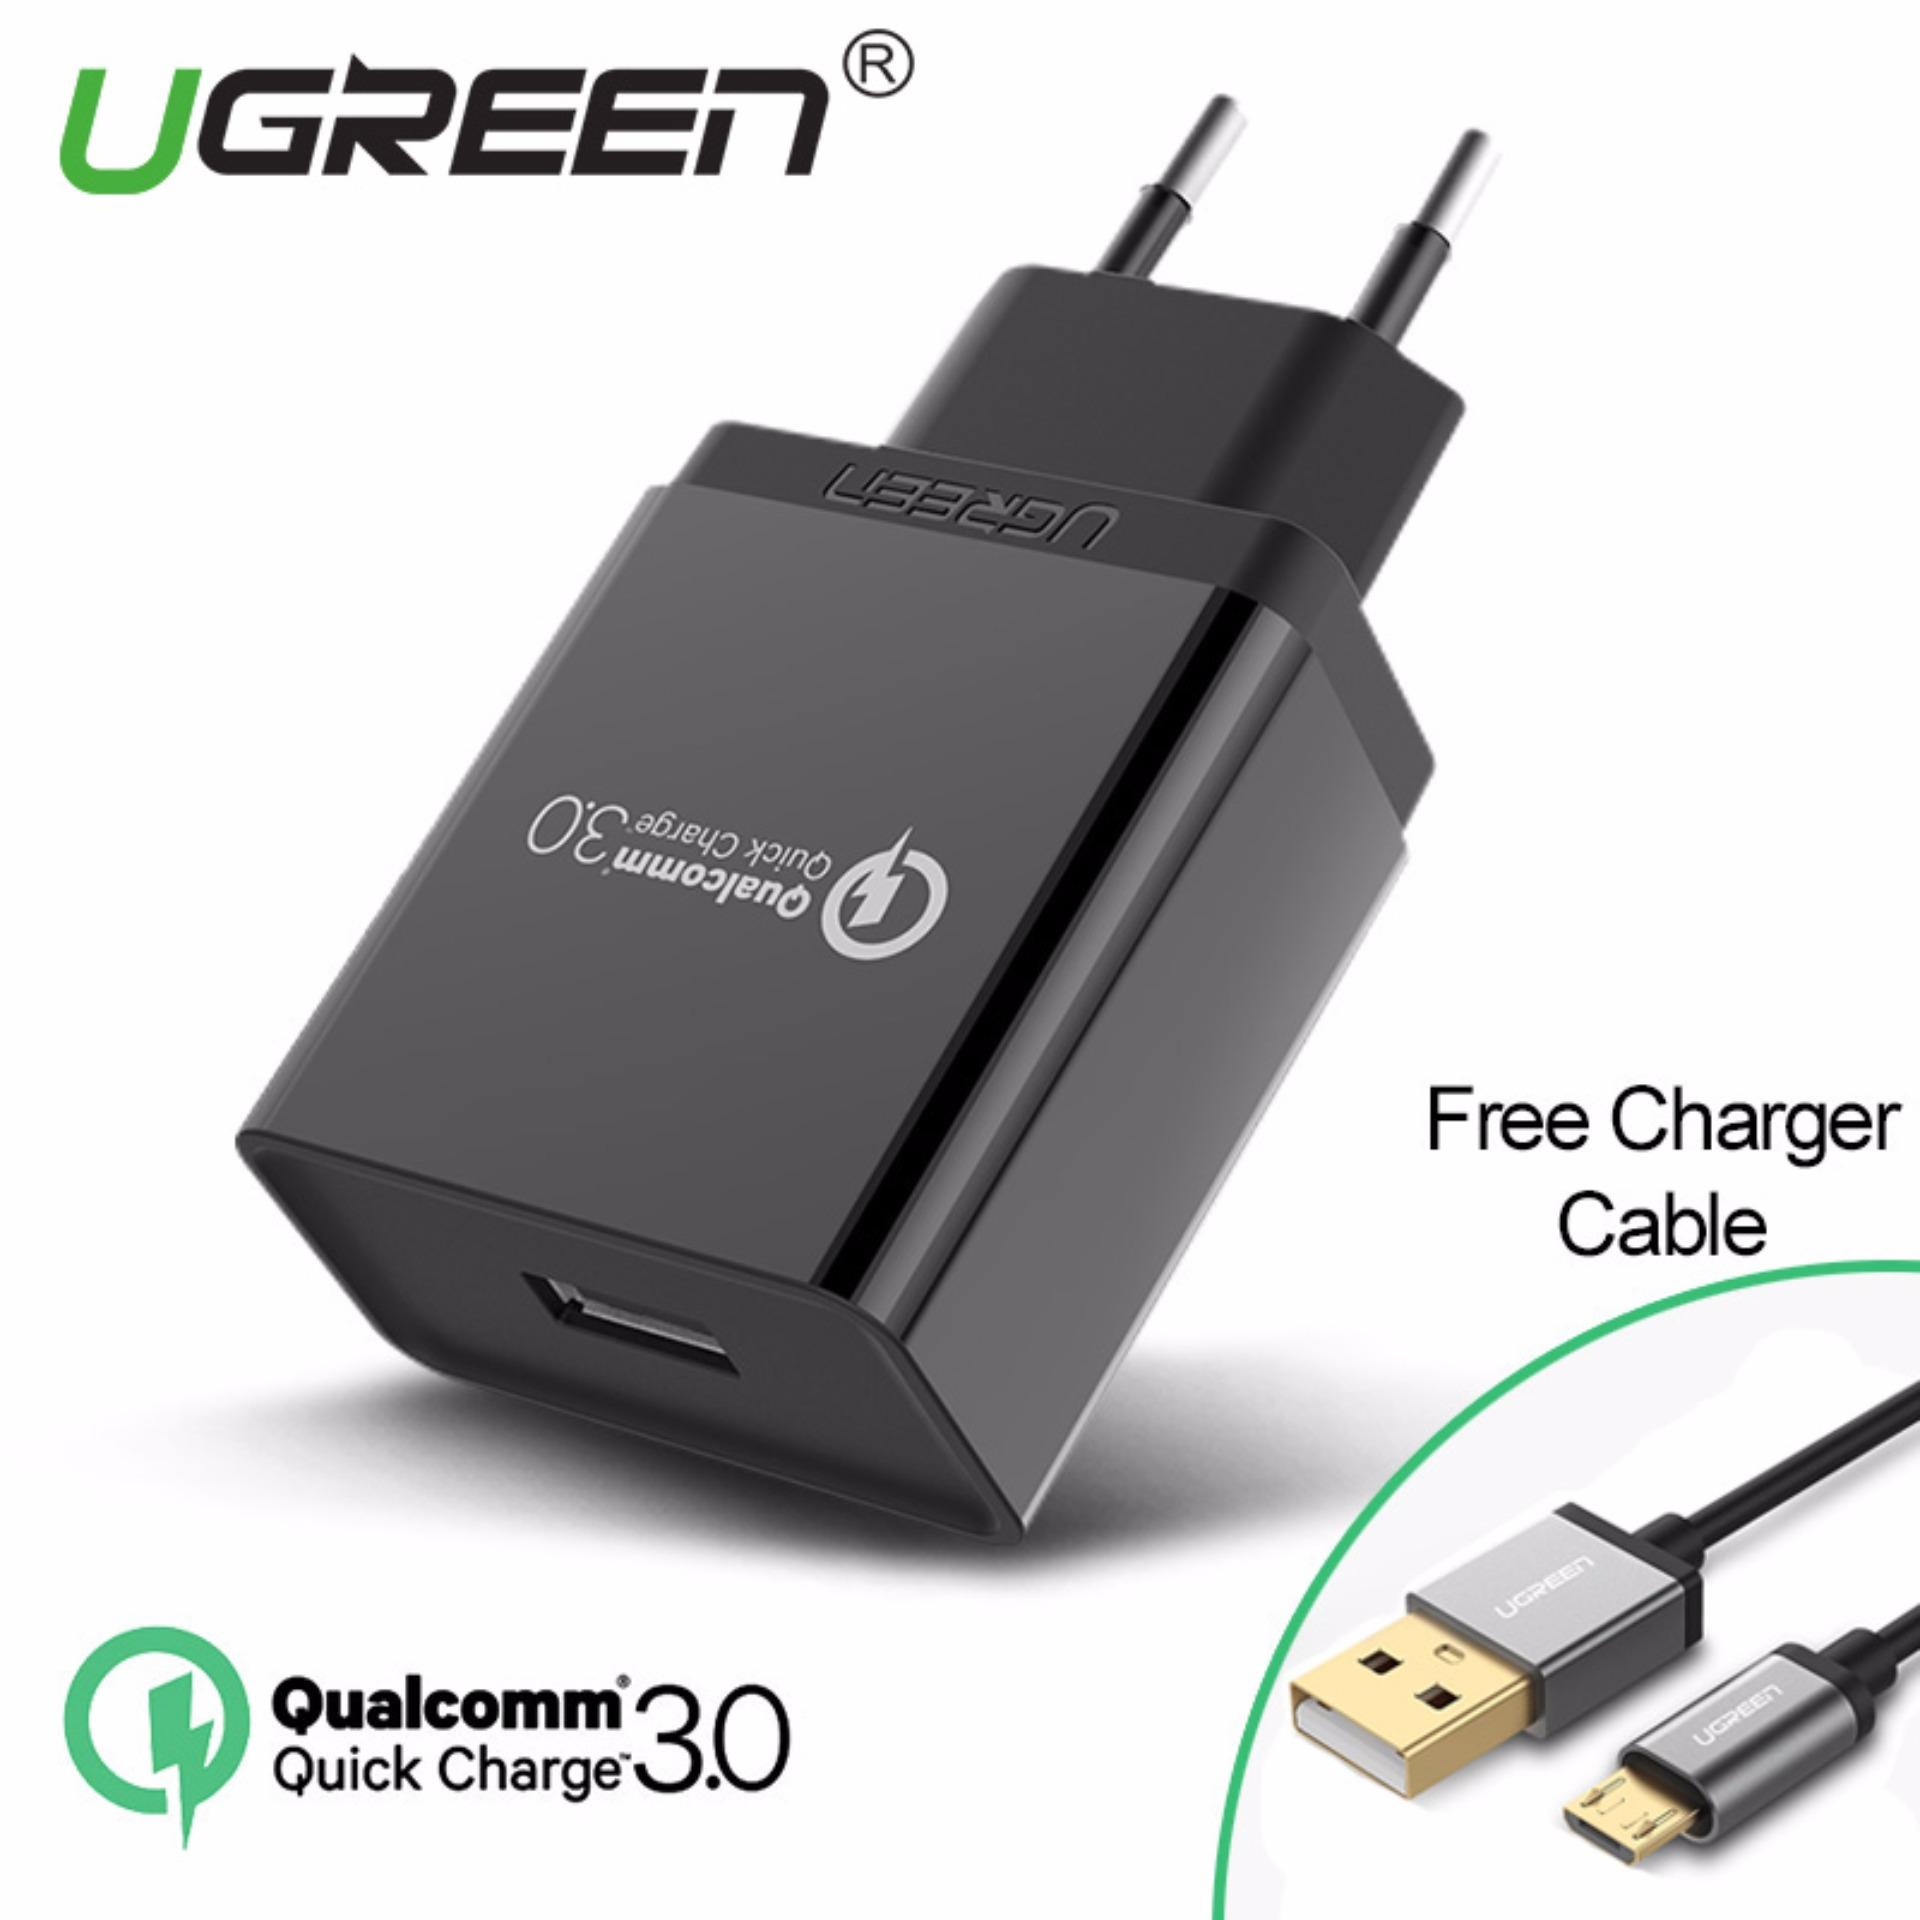 UGREEN 1Meter Quick Charger for Xiaomi Redmi Samsung Handphone HP USB 3.0 Charger 18W Fast Mobile Phone Charger Black + Free 1 Meter Micro USB Cable